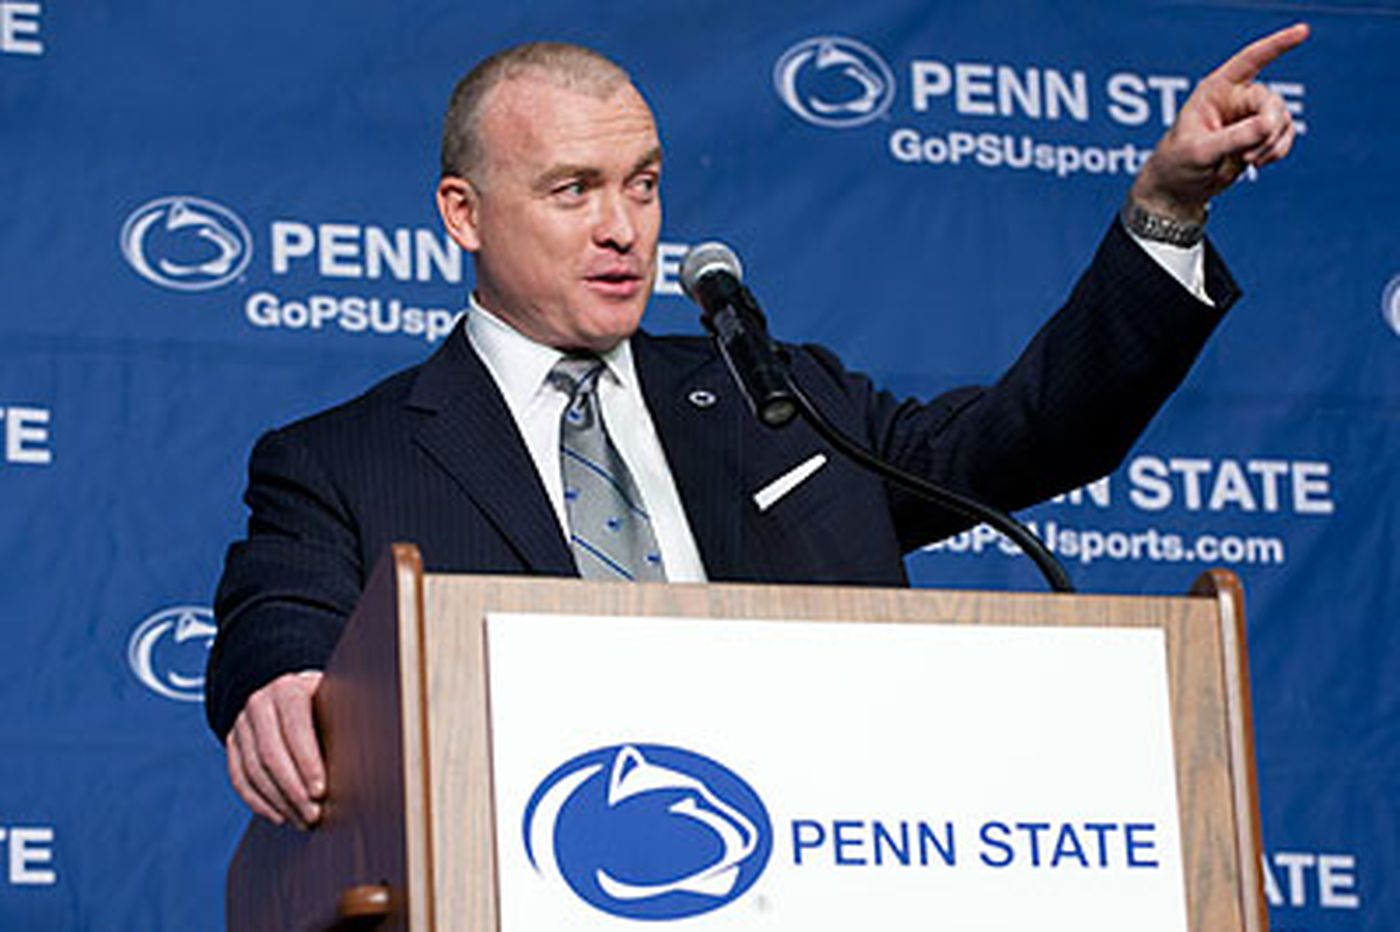 Chambers introduced as new Penn State men's basketball coach